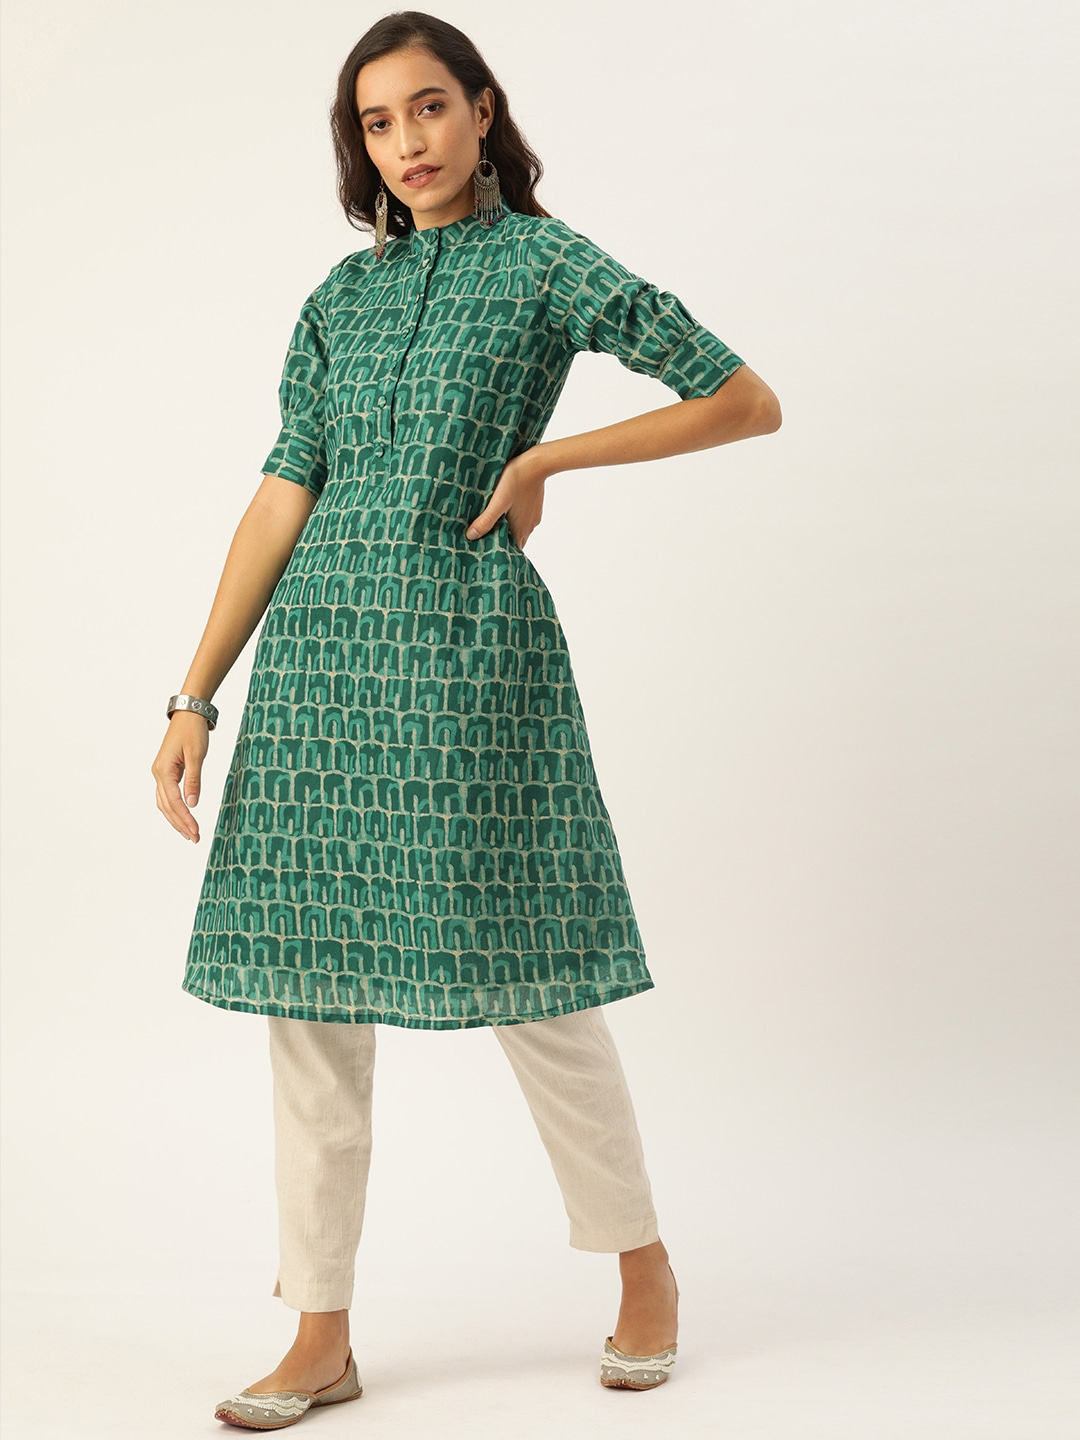 Details about  /Women Girls Semi Stitch Cotton Fabric Party Wear New Best Selling Dress Material